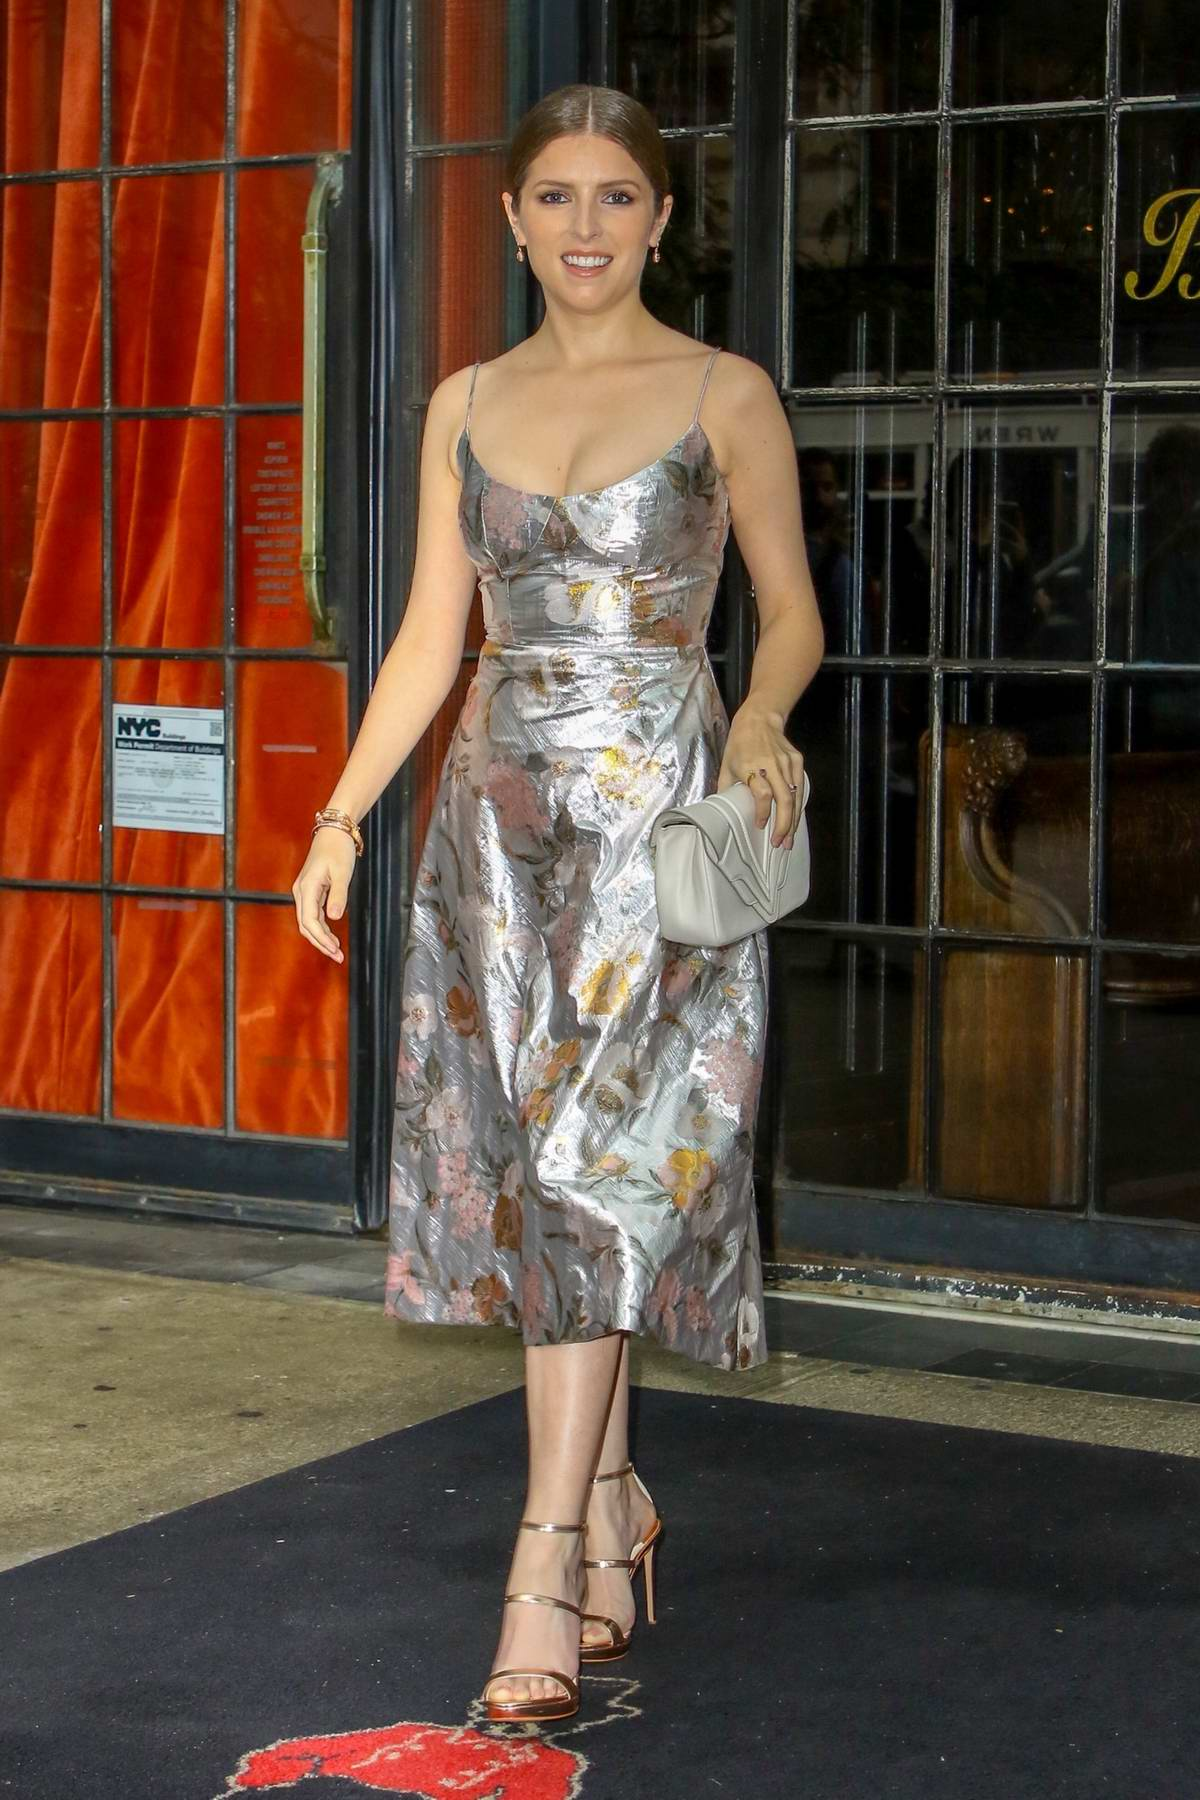 Anna Kendrick spotted in a silver dress as she leaves The Bowery Hotel and greet her fans in New York City